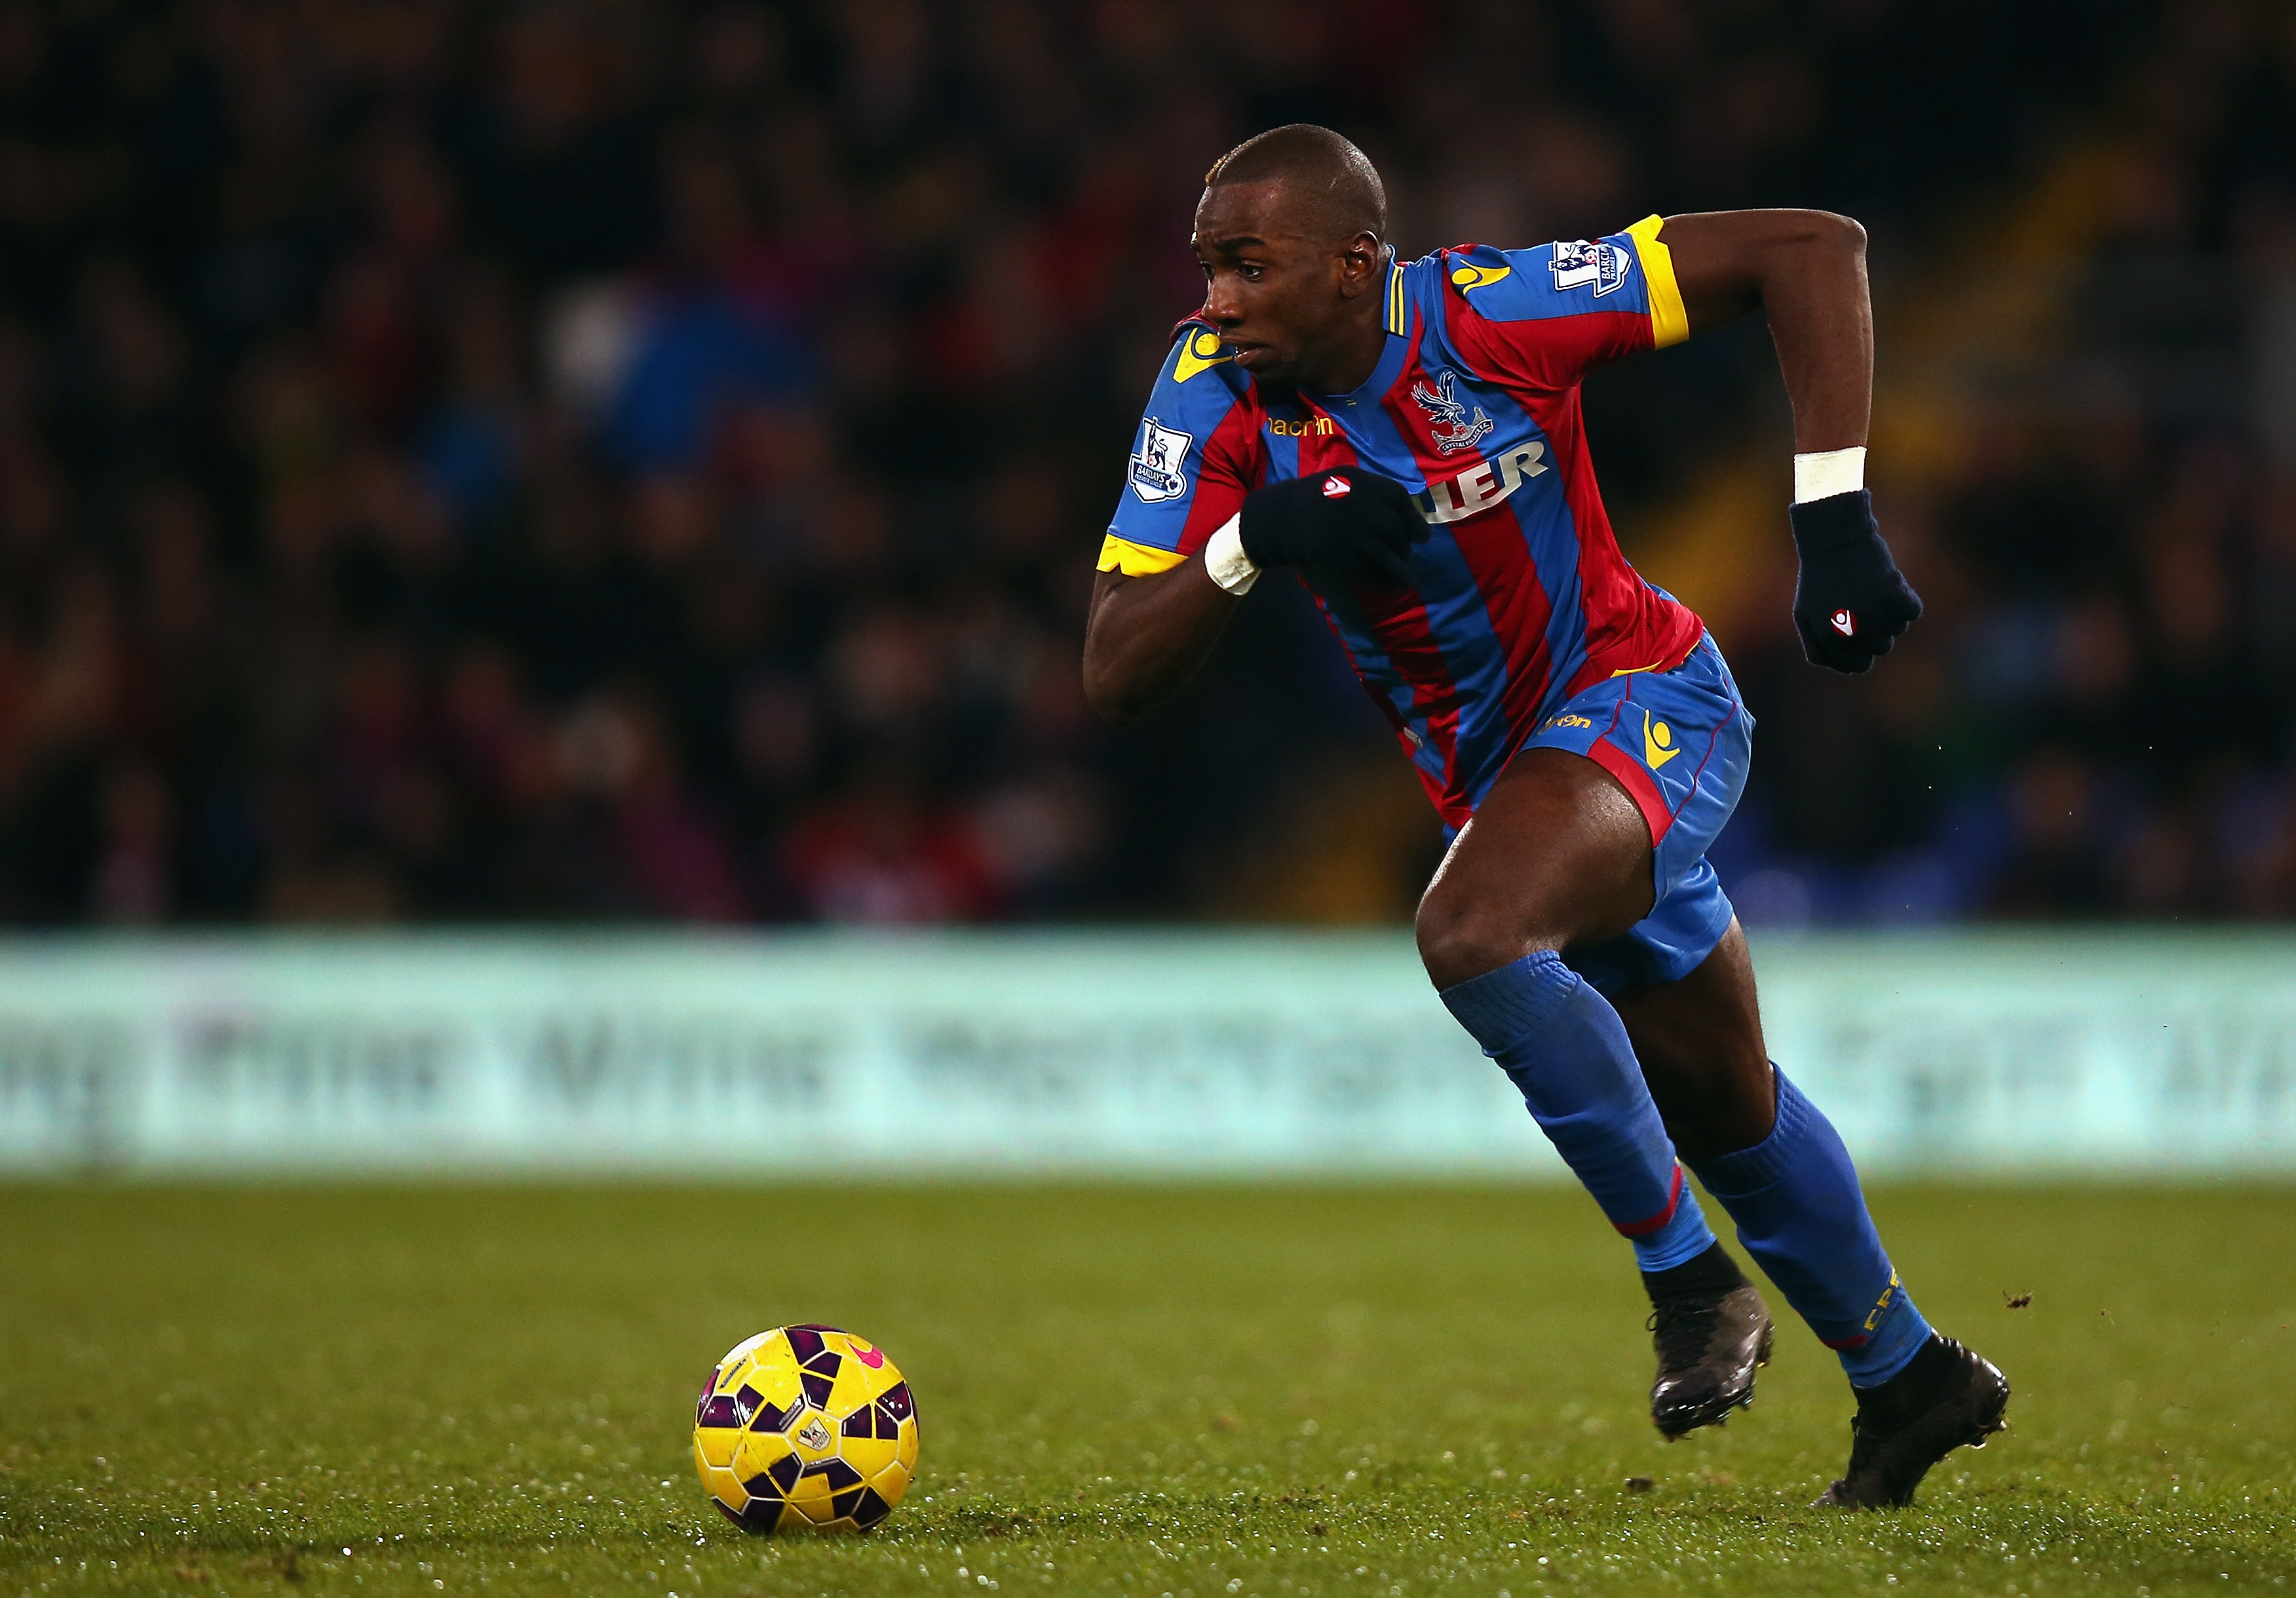 Bolasie had his best game of the season in the 5-1 win over Newcastle. Was he in your team?